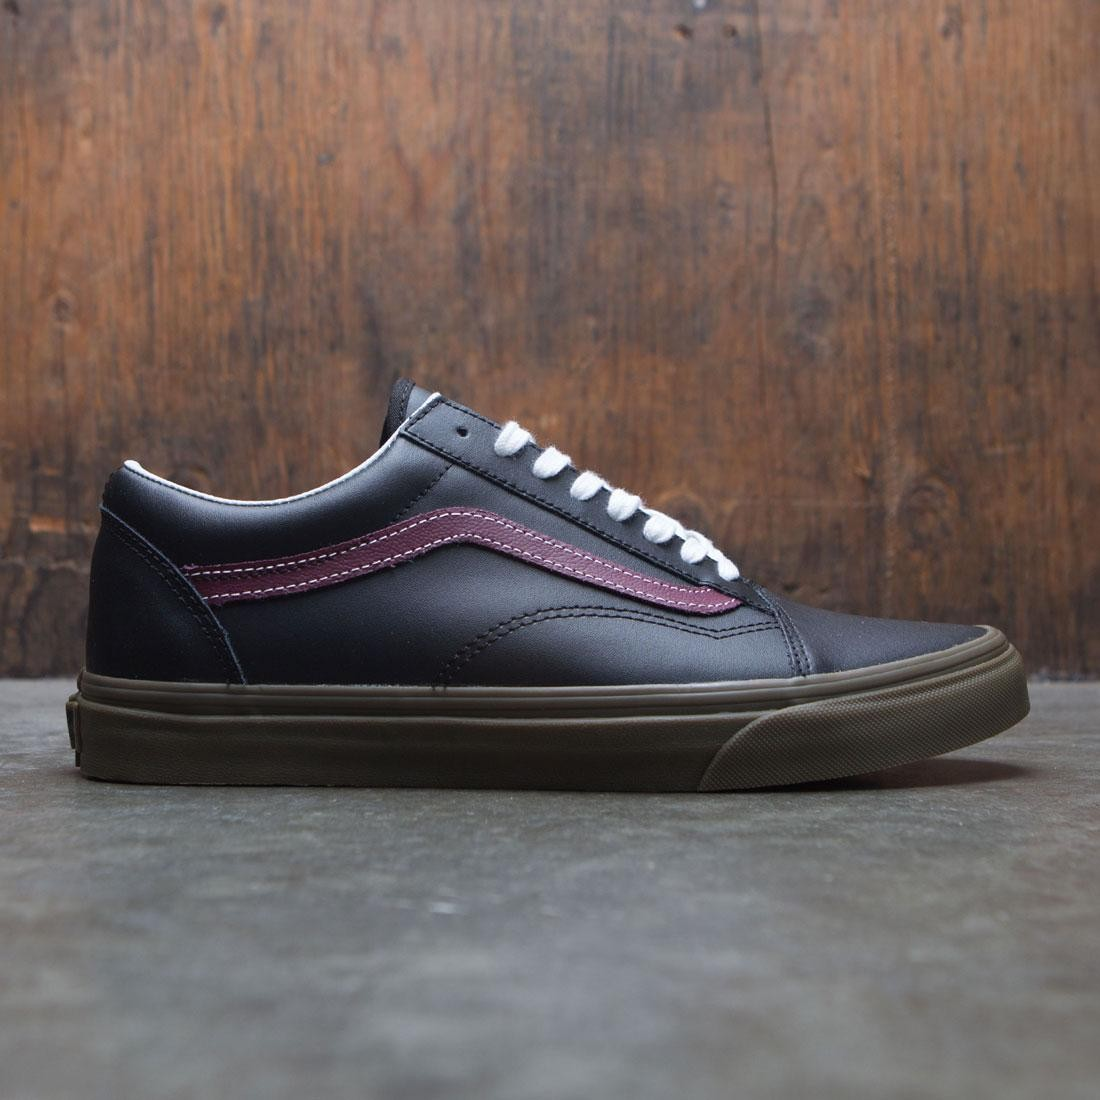 1d7d83006c58 Vans Men Old Skool - Bleacher black